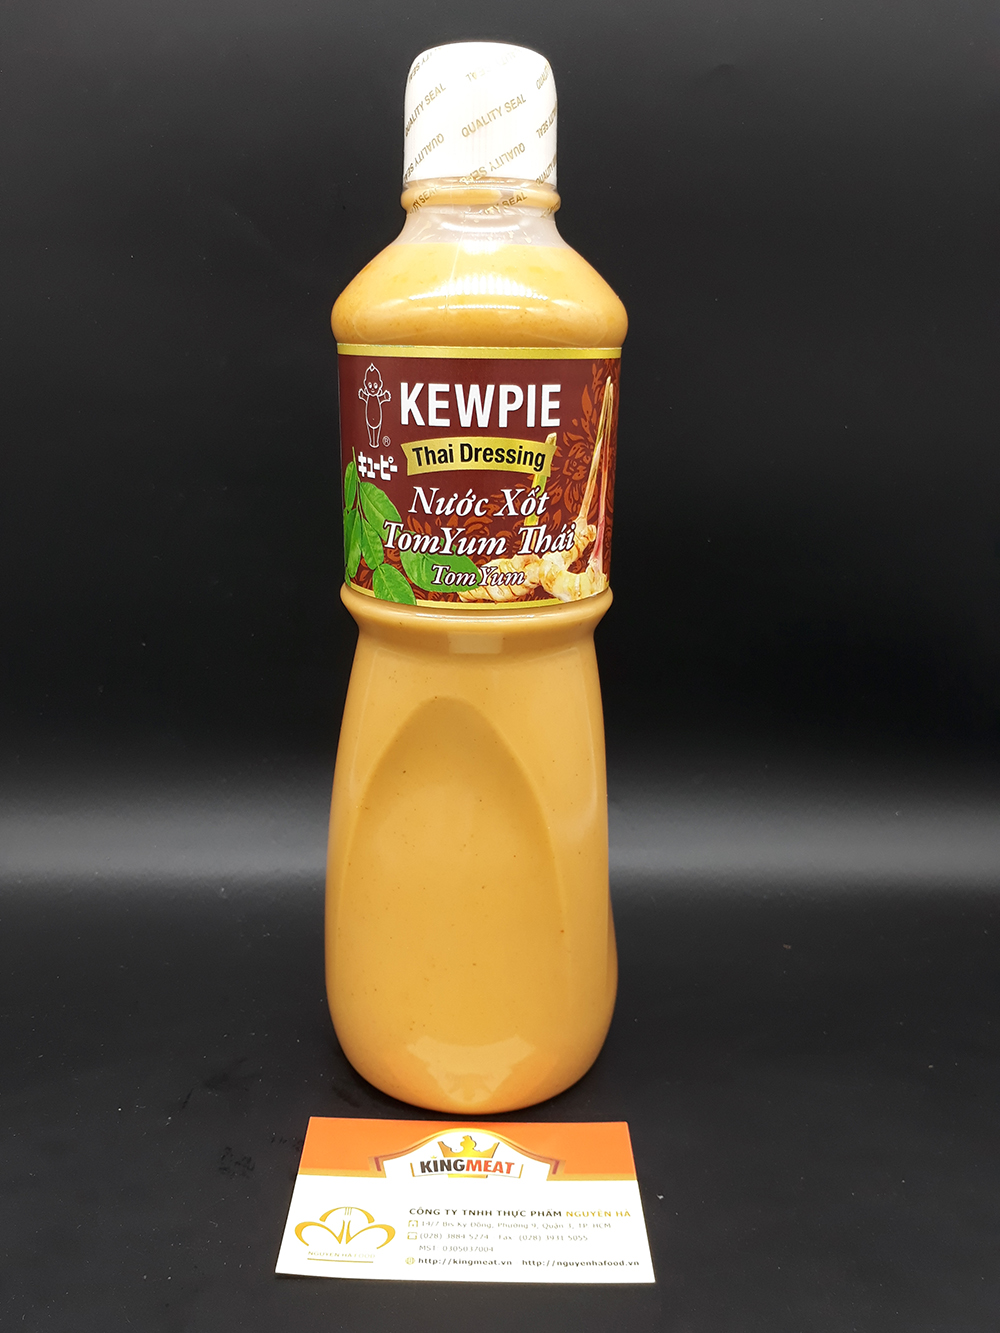 XỐT TOM YUM KEWPIE - KEWPIE THAI DRESSING TOM YUM